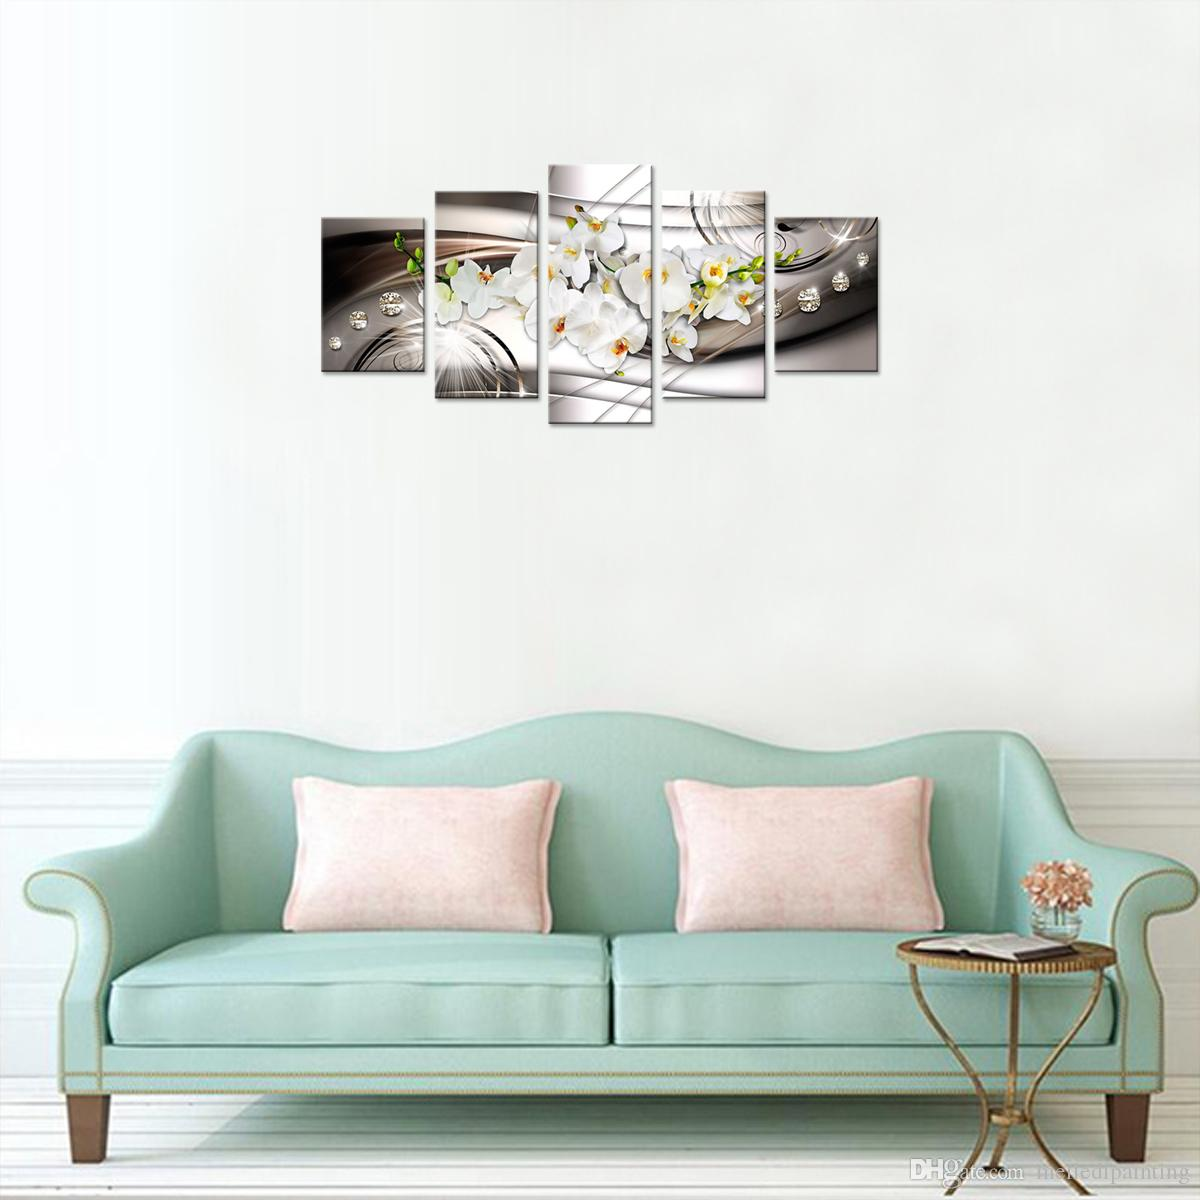 Amosi Art Butterfly Orchid Flowers Canvas Print Wall Art White Floral Painting Decor Diamond Crystal Wall Picture for Living Room Unframed